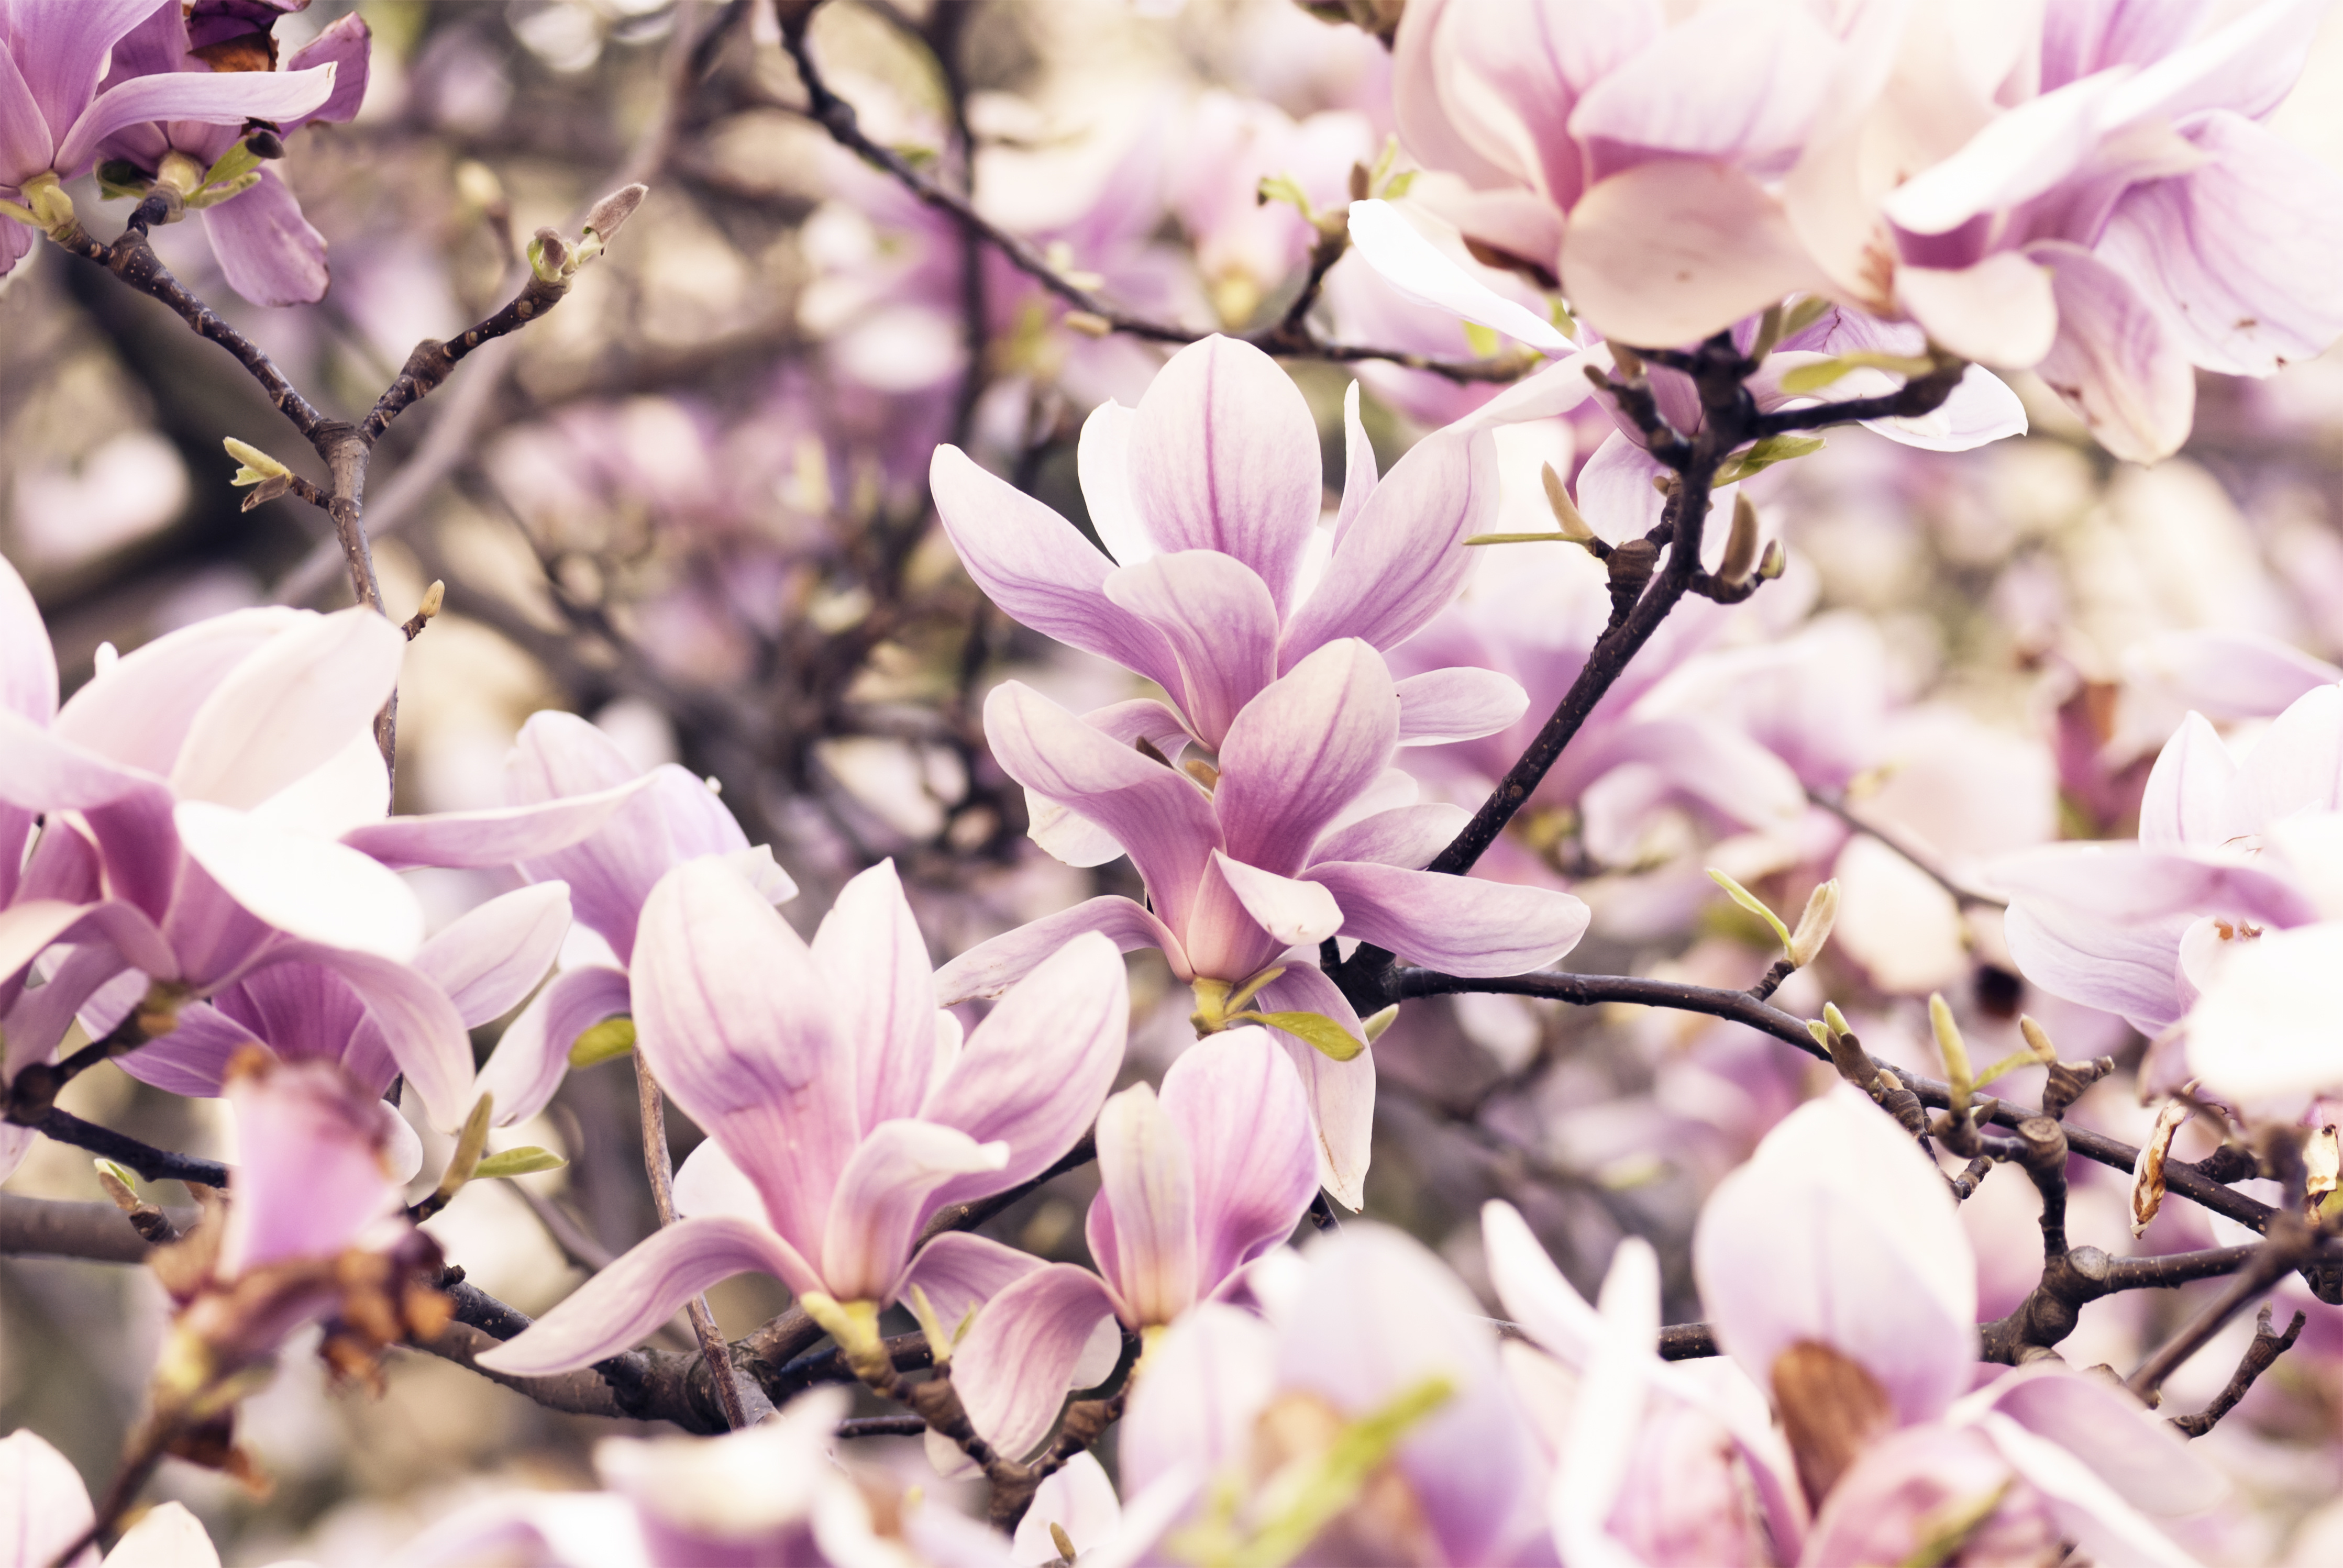 Magnolia and Its Effect on Cannabinoid Receptors